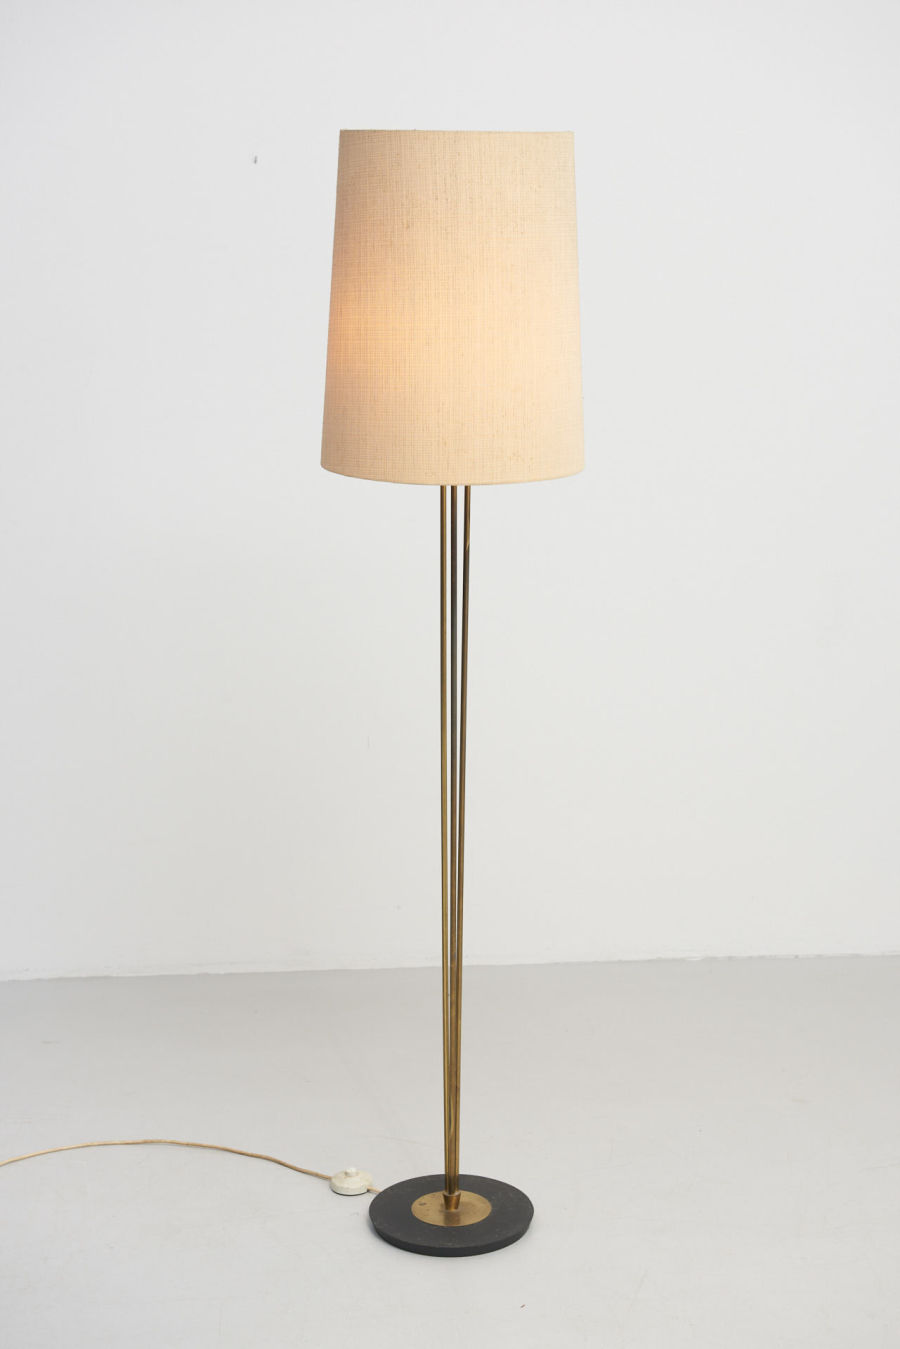 modestfurniture-vintage-2004-floor-lamp-brass-1950s01